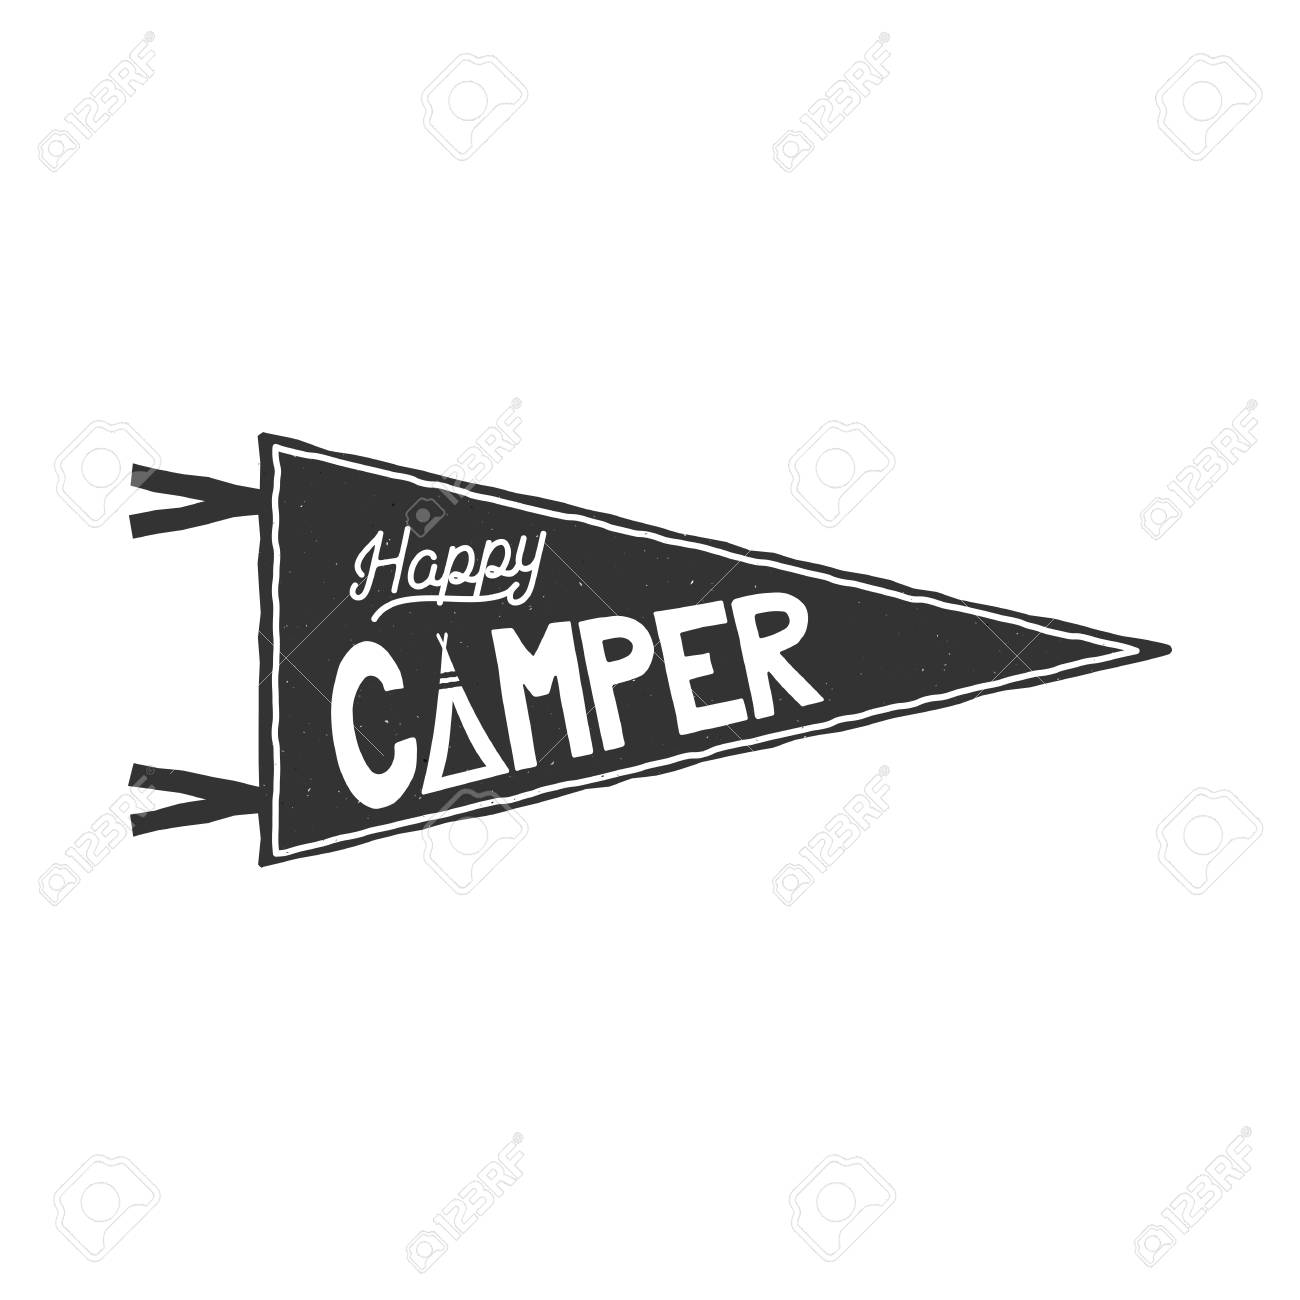 Happy Camper Pennant Template Typography Design And Outdoor Activity Symbol